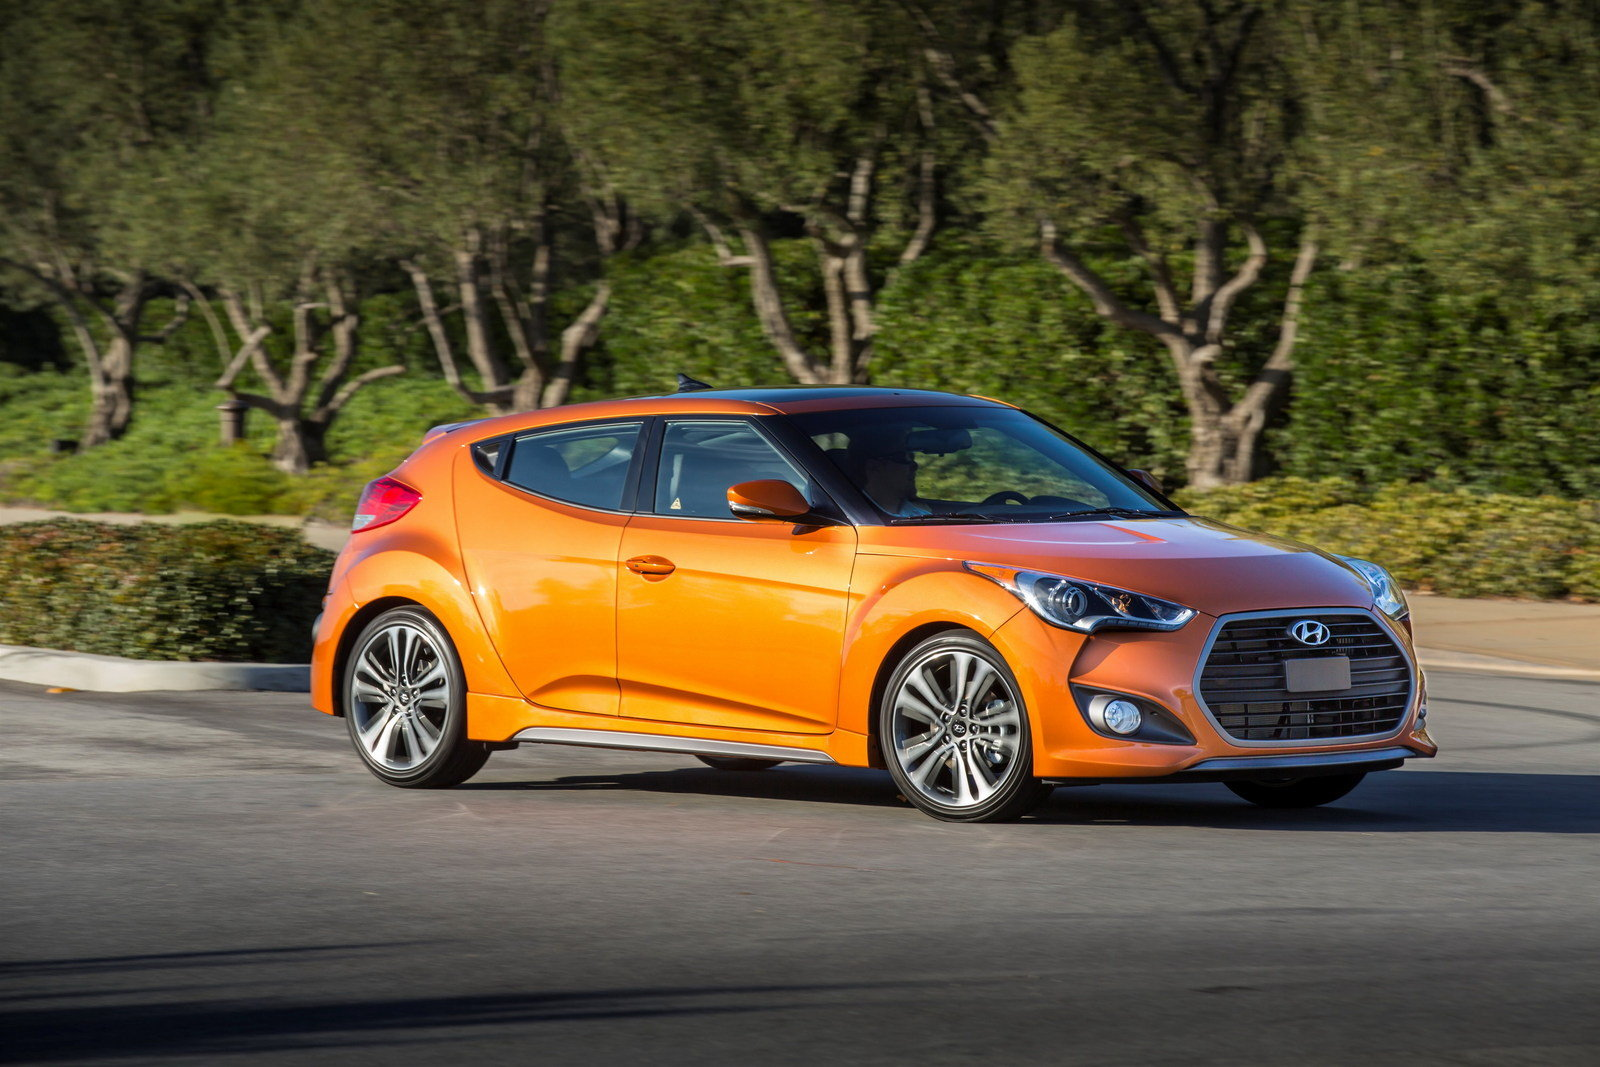 2016 hyundai veloster turbo picture 617094 car review top speed. Black Bedroom Furniture Sets. Home Design Ideas